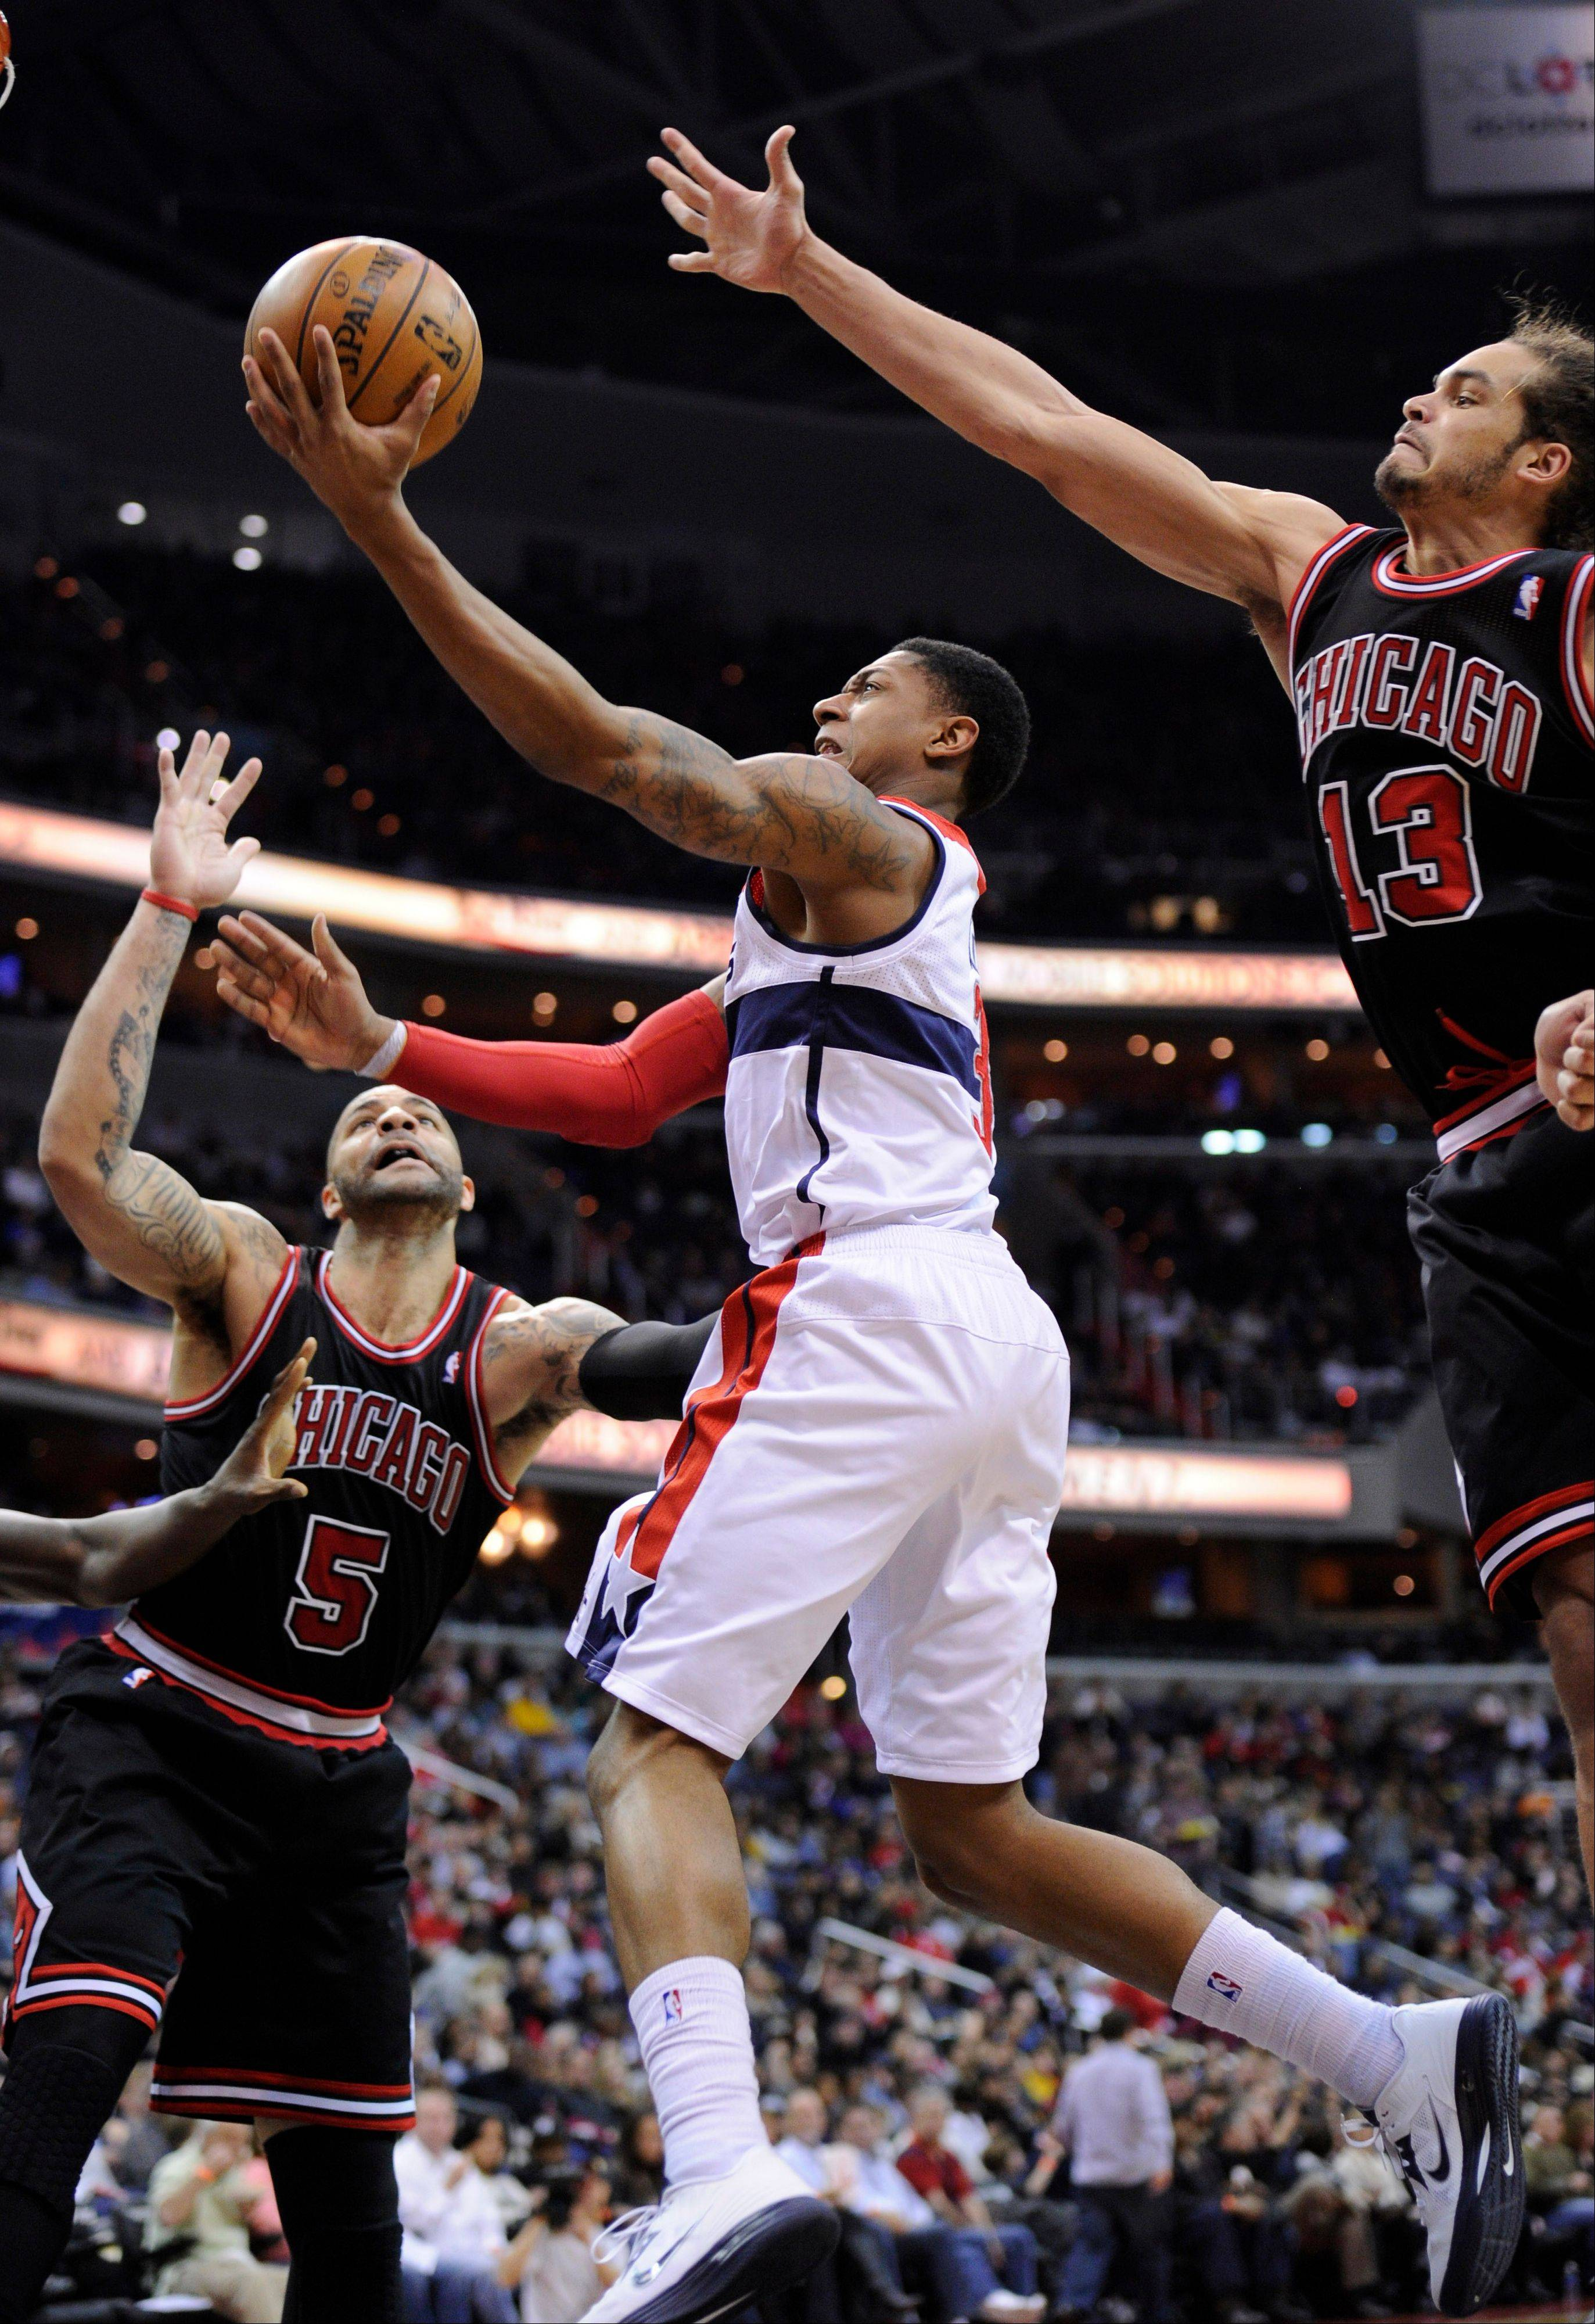 Bradley Beal, center, goes to the basket against Bulls forward Carlos Boozer (5) and center Joakim Noah (13) during the second half of an NBA basketball game, Saturday, Jan. 26, 2013, in Washington. The Wizards won 86-73.